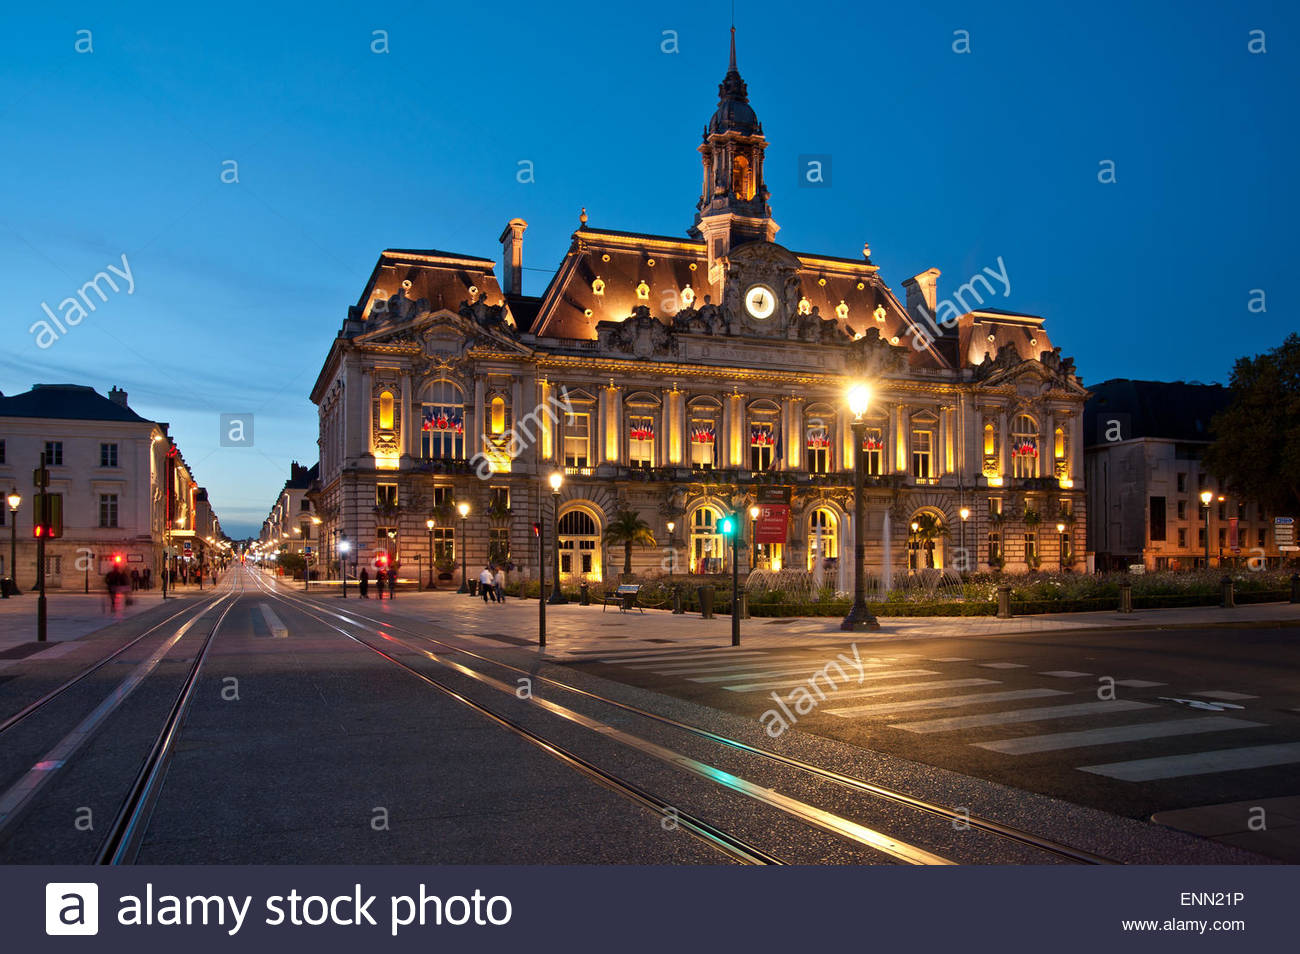 Tours - Stock Image